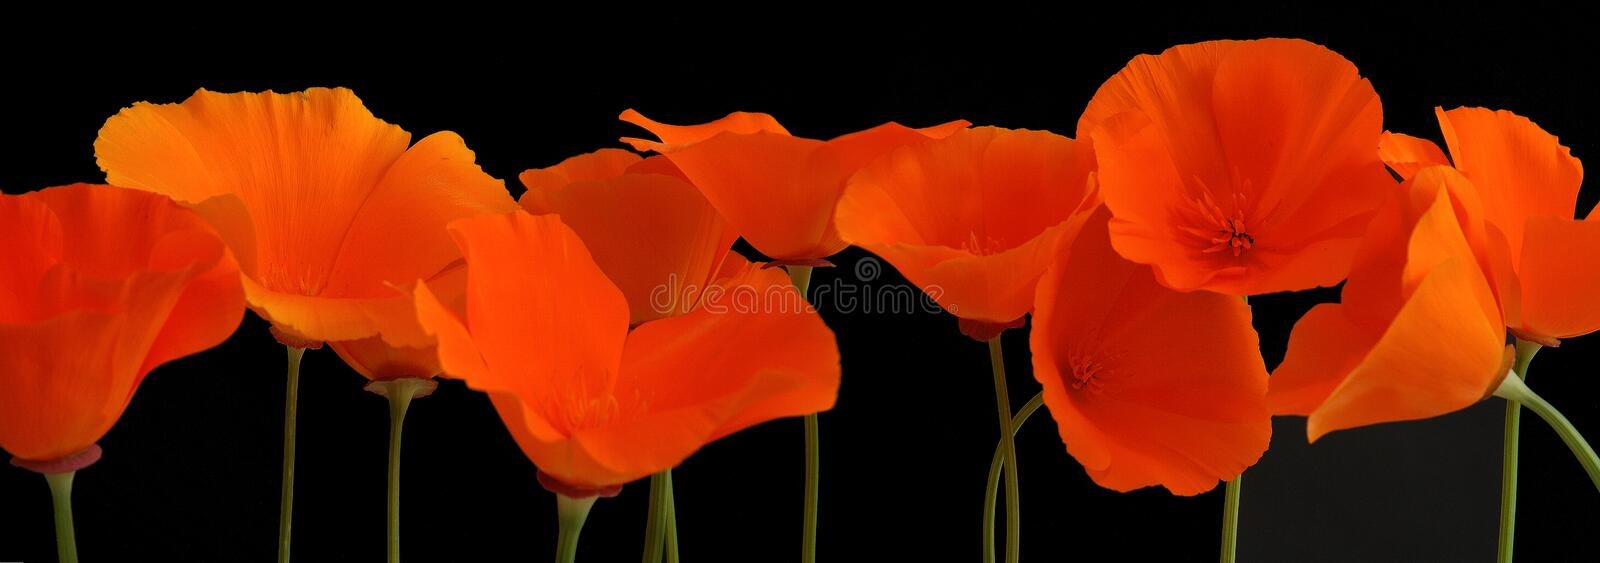 Panorama of orange poppies royalty free stock photos